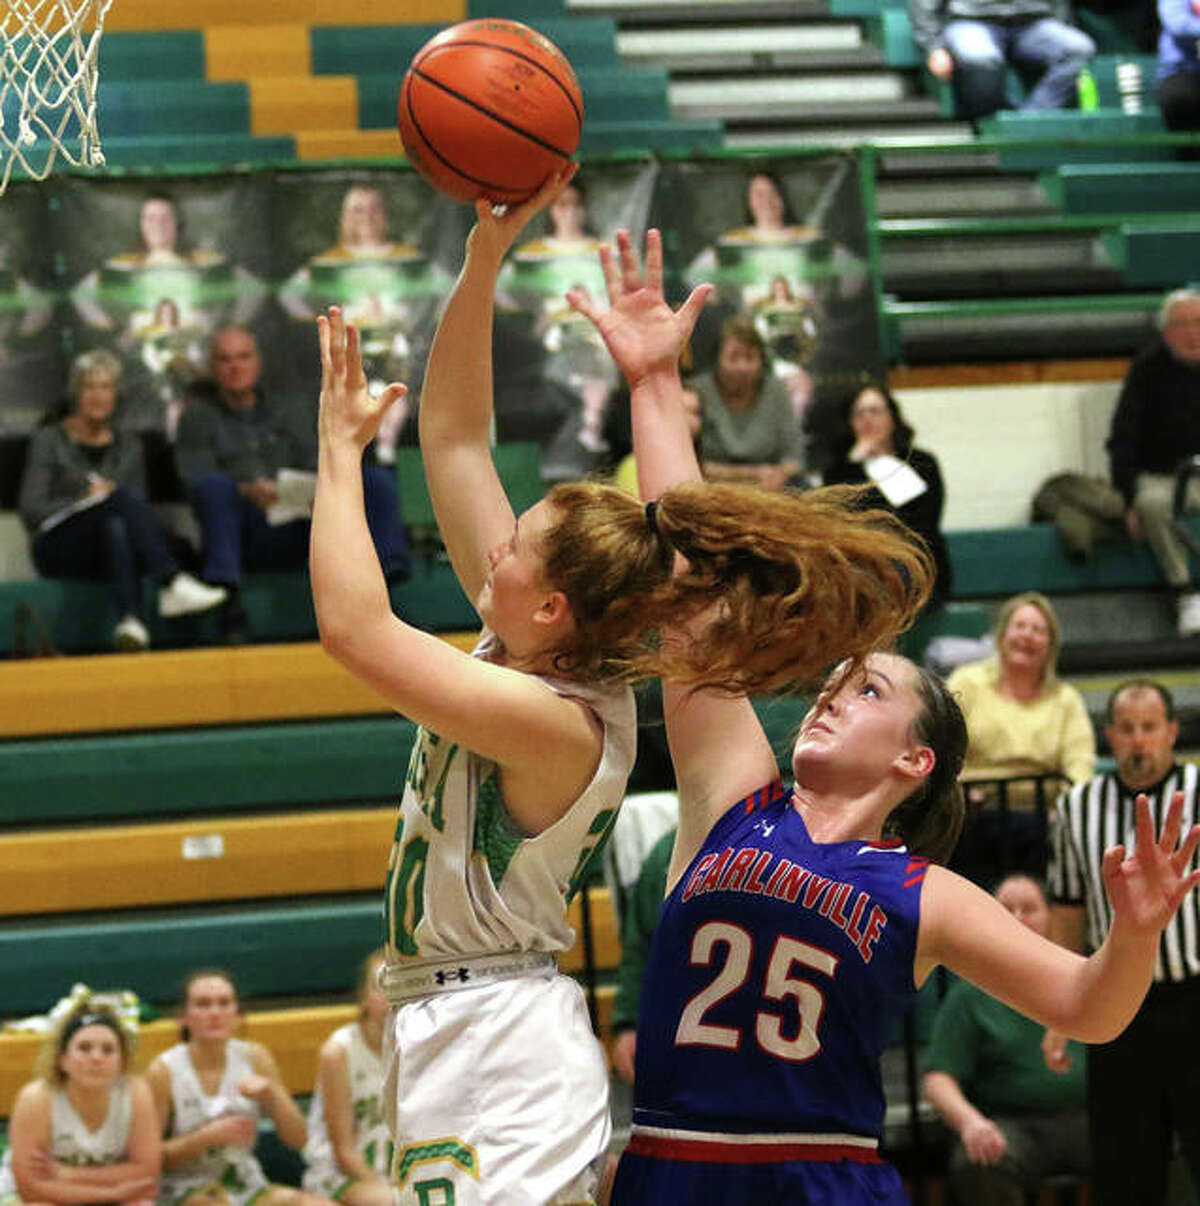 Southwestern's Rylee Smith (left) gets past Carlinville's Sarah DeNeve and scores points that give the Piasa Birds a 21-19 third-quarter lead they would not relinquish Thursday night in Piasa.